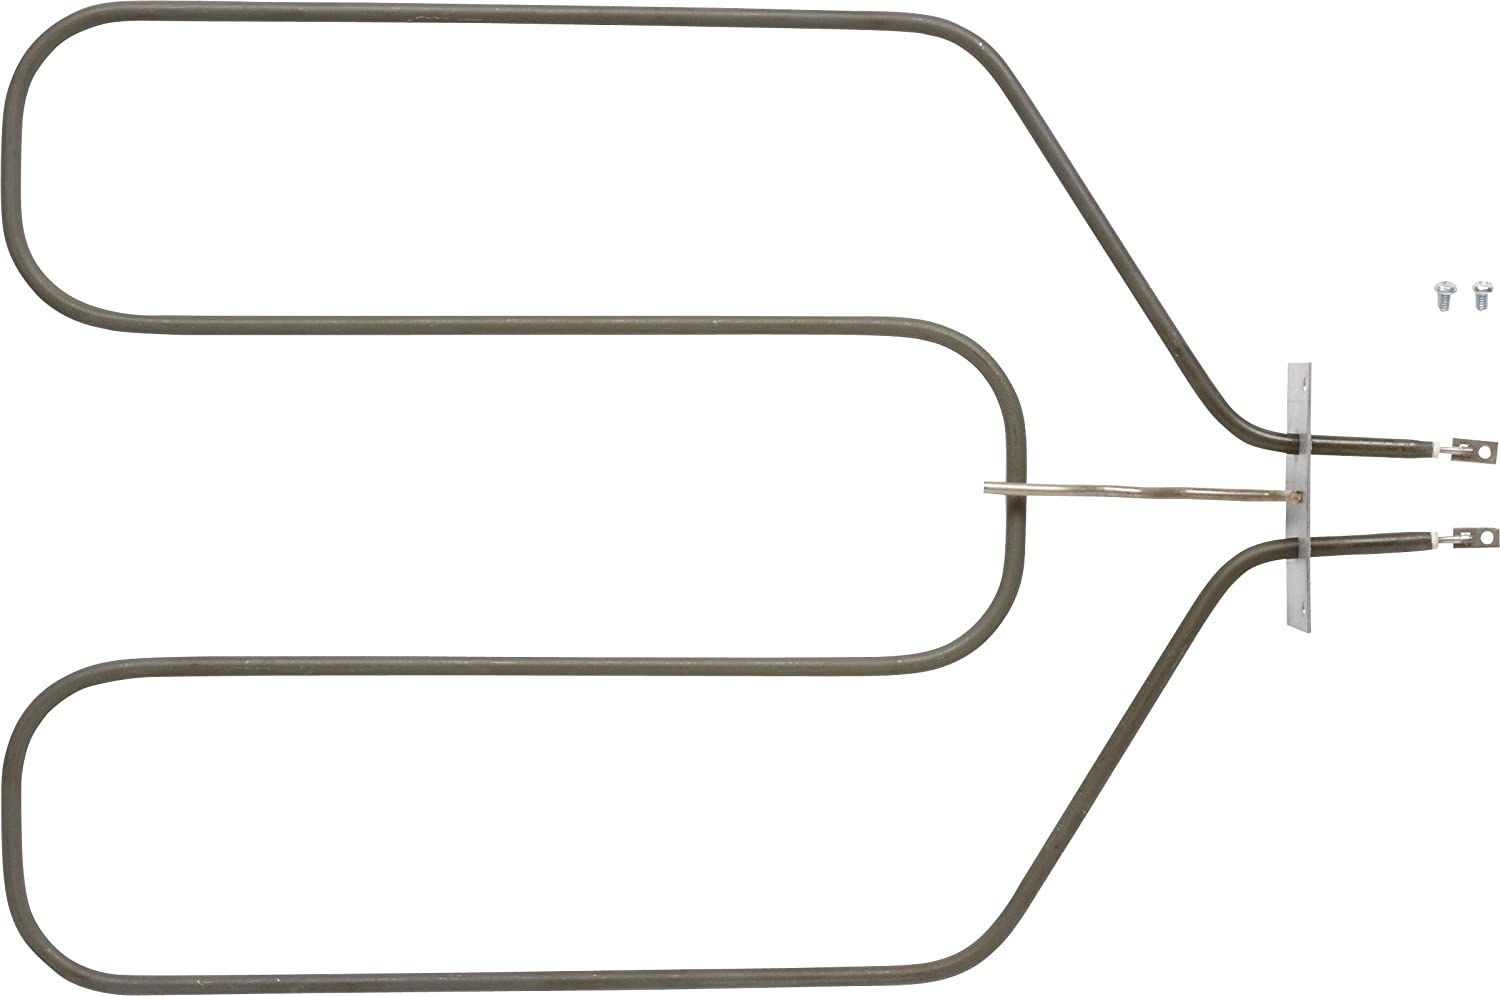 GE WB44X173 Broil Element